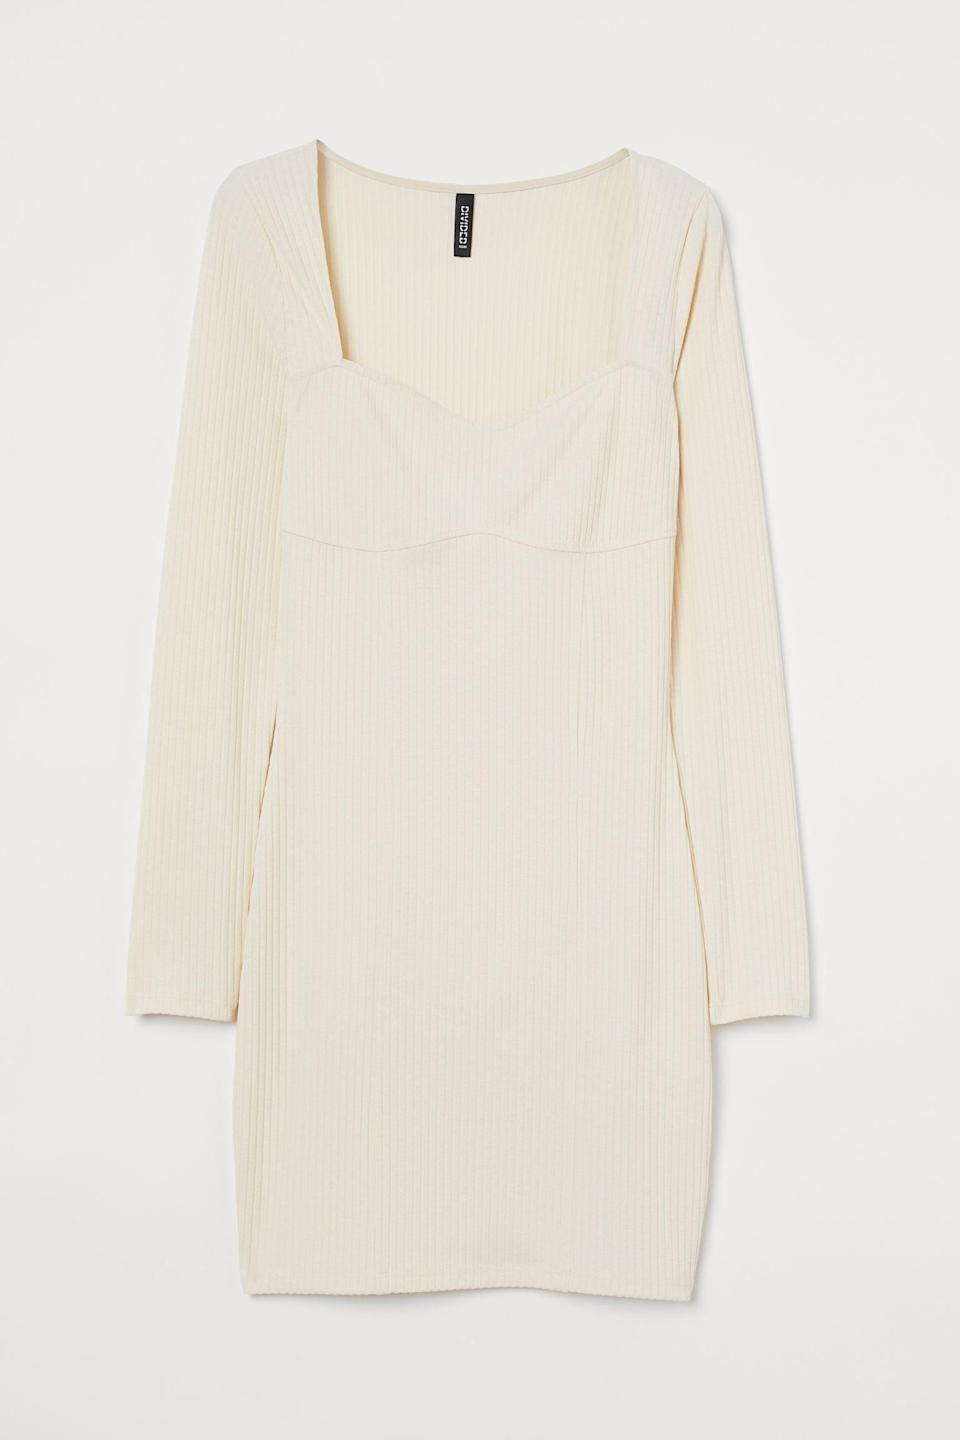 <p>Want to get tons of compliments when you go out with the girls next week? Wear this form-fitting <span>Ribbed Dress</span> ($15, originally $18), which oozes femininity and confidence.</p>